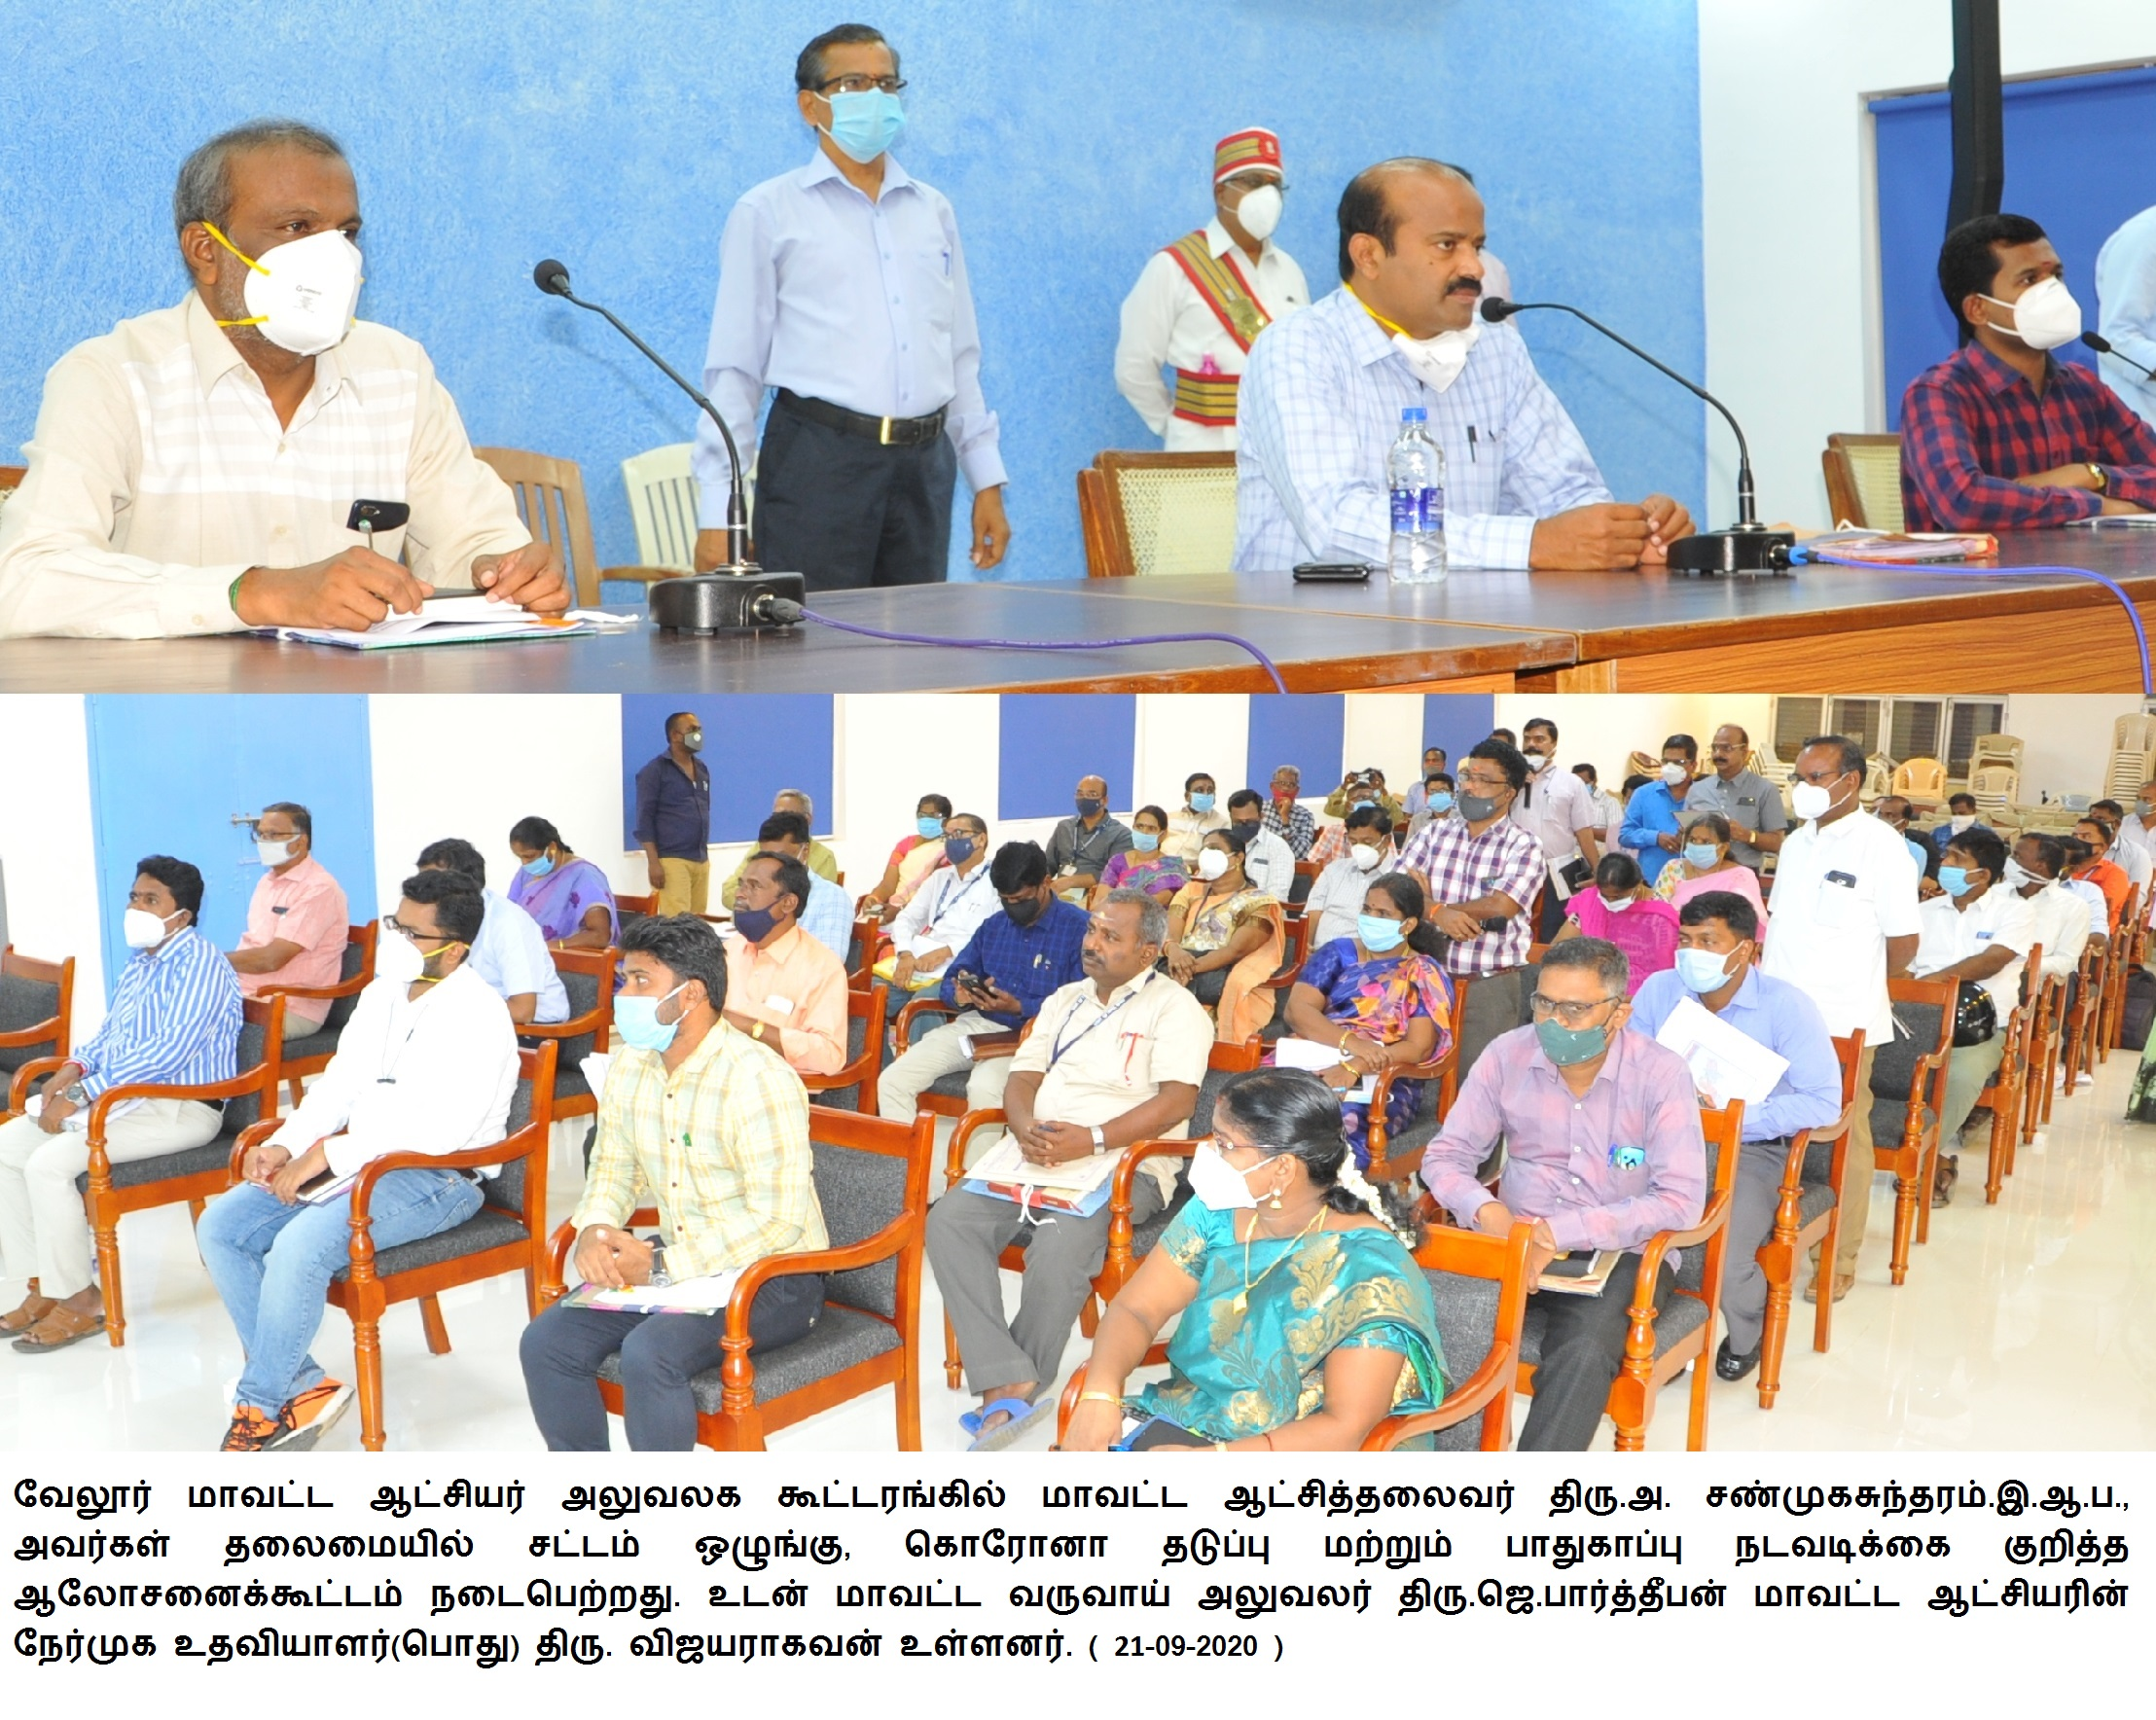 District Collector Meeting with Health Department Officials for Corona Virus Preventive 21-09-2020